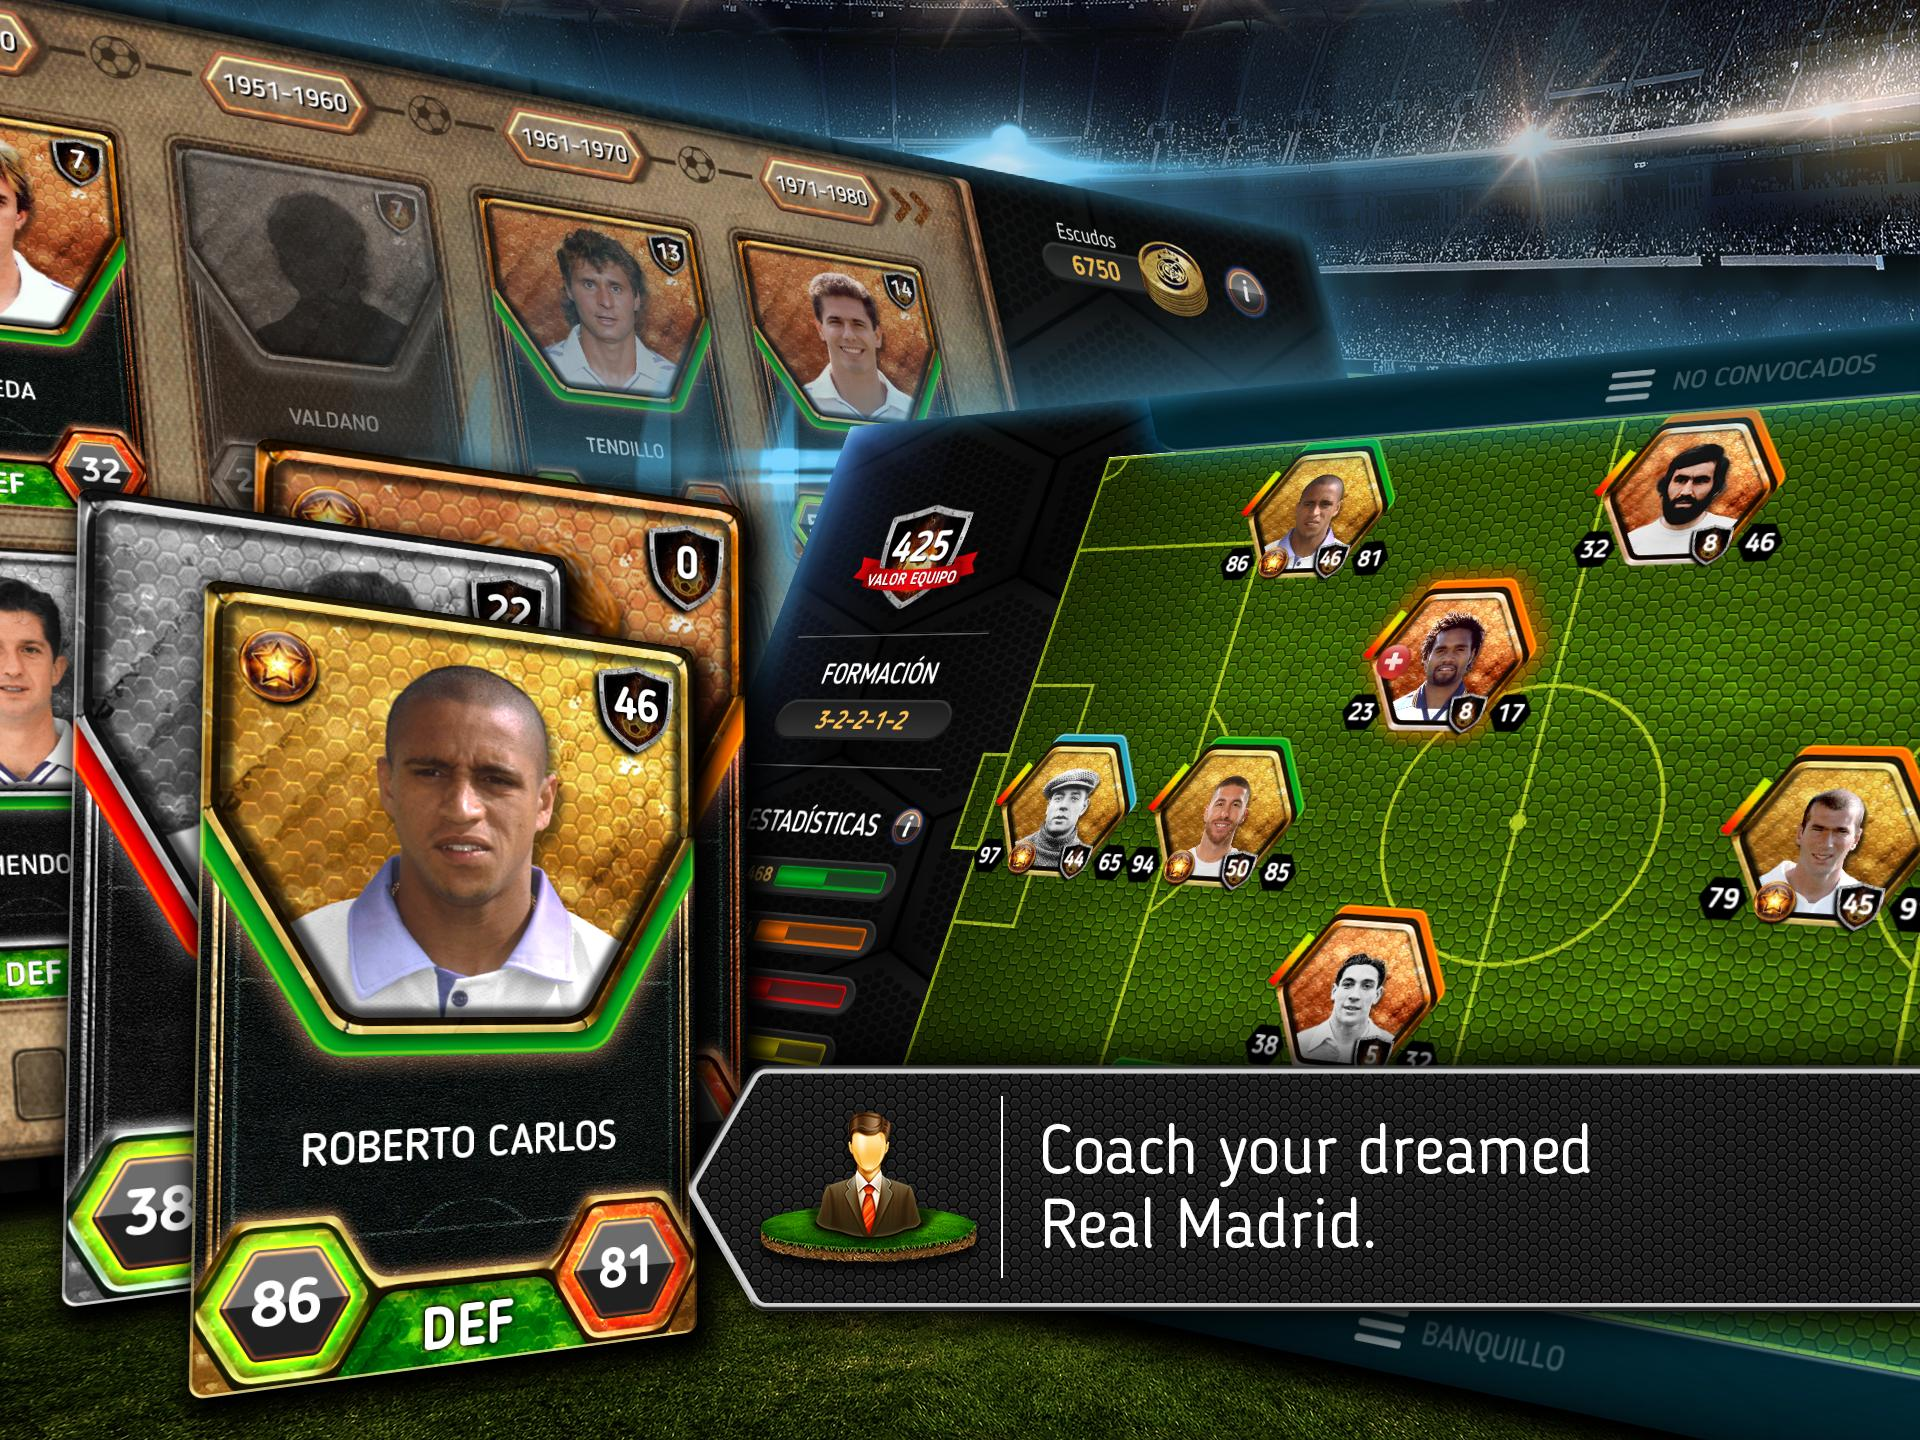 Real Madrid Legends for Android - APK Download